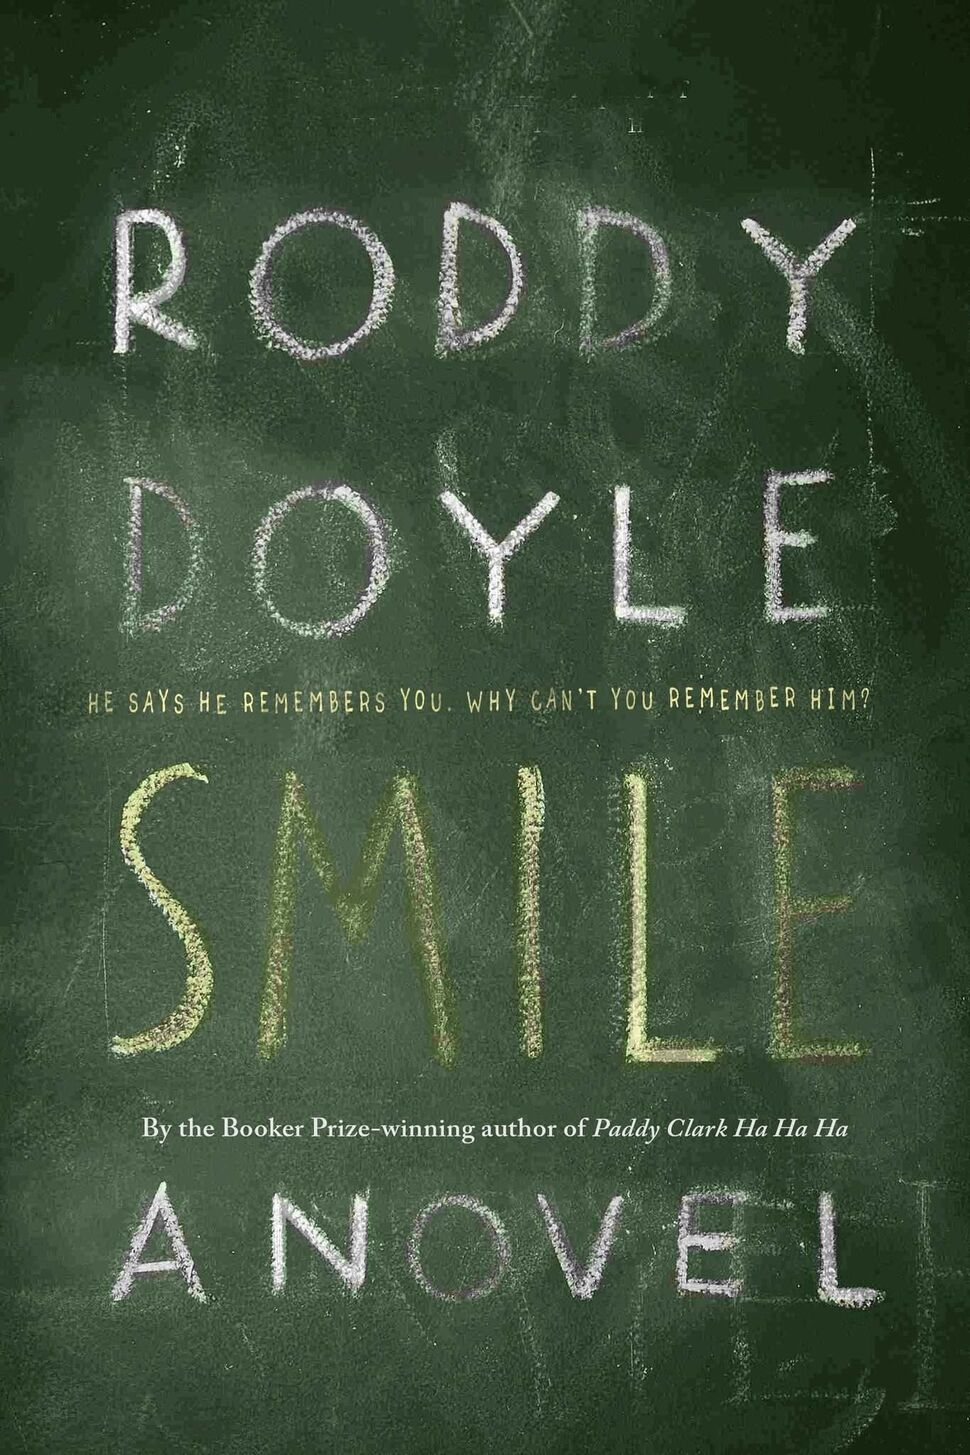 Smile</p><p>By Roddy Doyle</p><p>Knopf Canada, Sept. 12</p><p>The Booker Prize-winning Doyle (Paddy Clark Ha Ha Ha) retains his razor-sharp dialogue and humour in his latest &mdash; about a newly single man who runs into an old school friend at a bar and heads down a rabbit-hole of troubling memories &mdash; but adds psychological suspense and a very unexpected ending.</p></p>